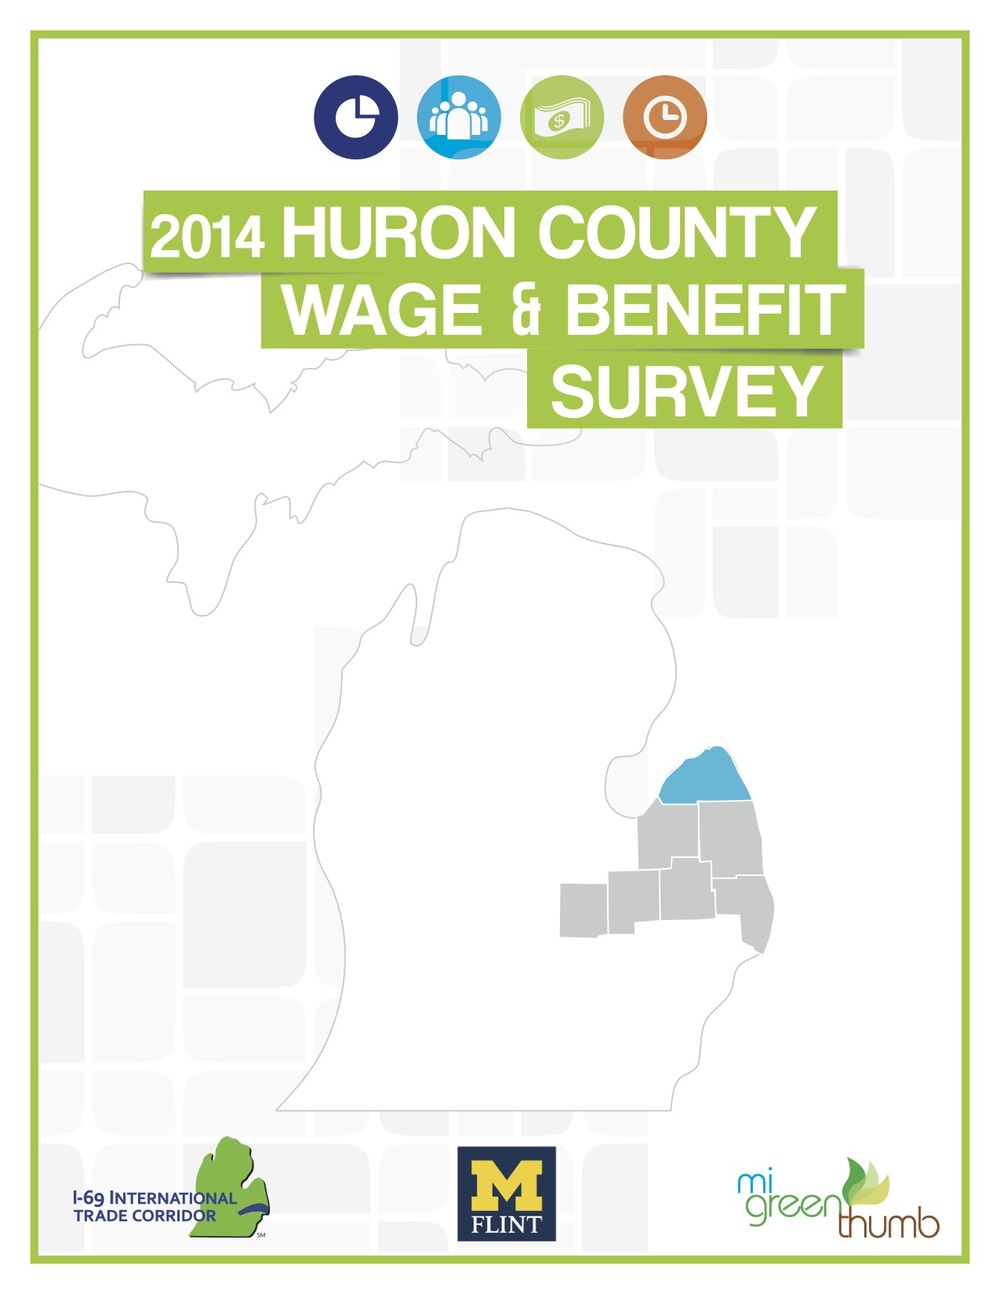 2014 Huron County Wage & Benefit Survey